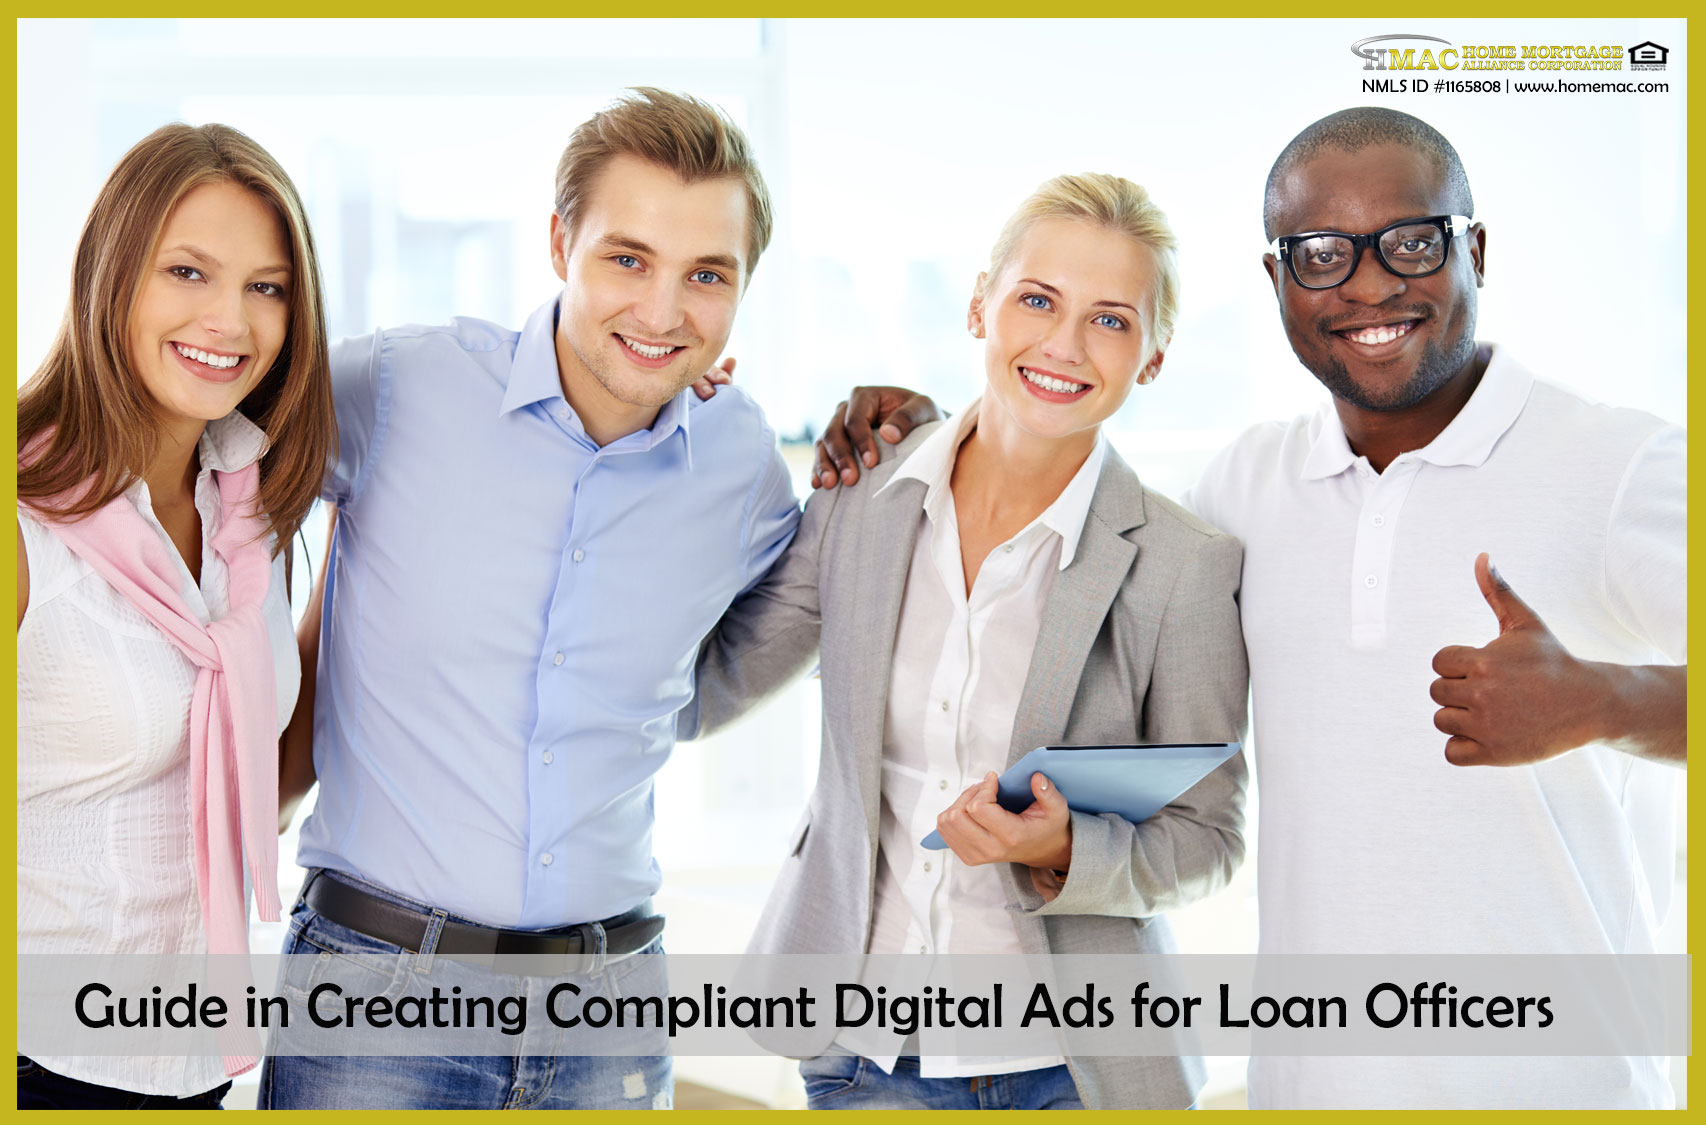 quick guide in creating compliant digital ads for loan officers